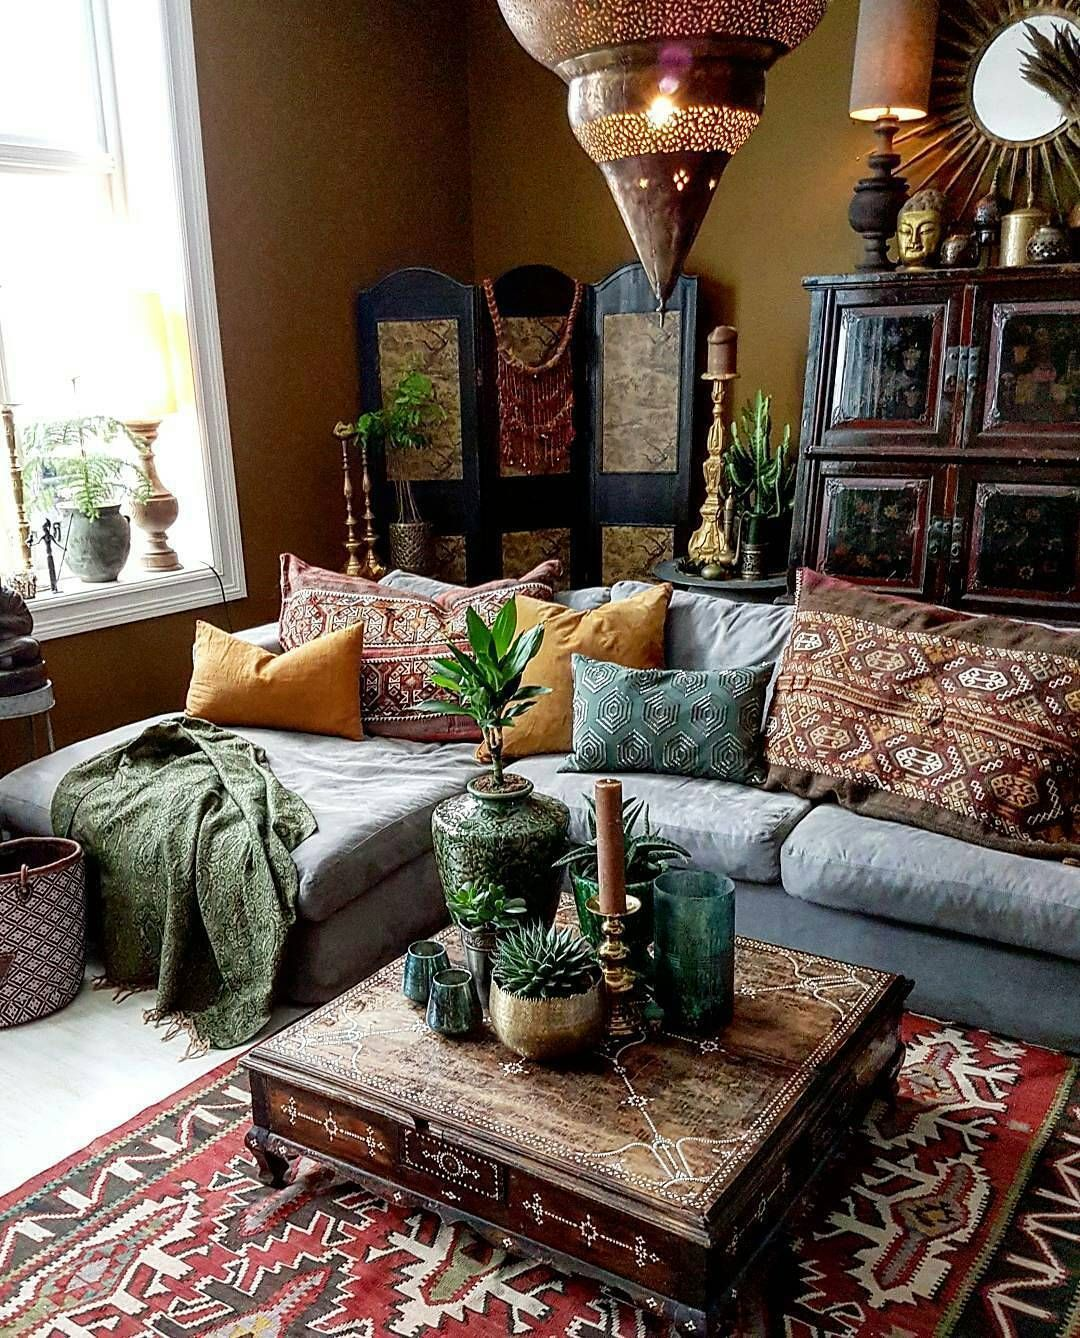 Bohemian Decor: Living Room Inspirations: A Pile Of Pillows Helps The